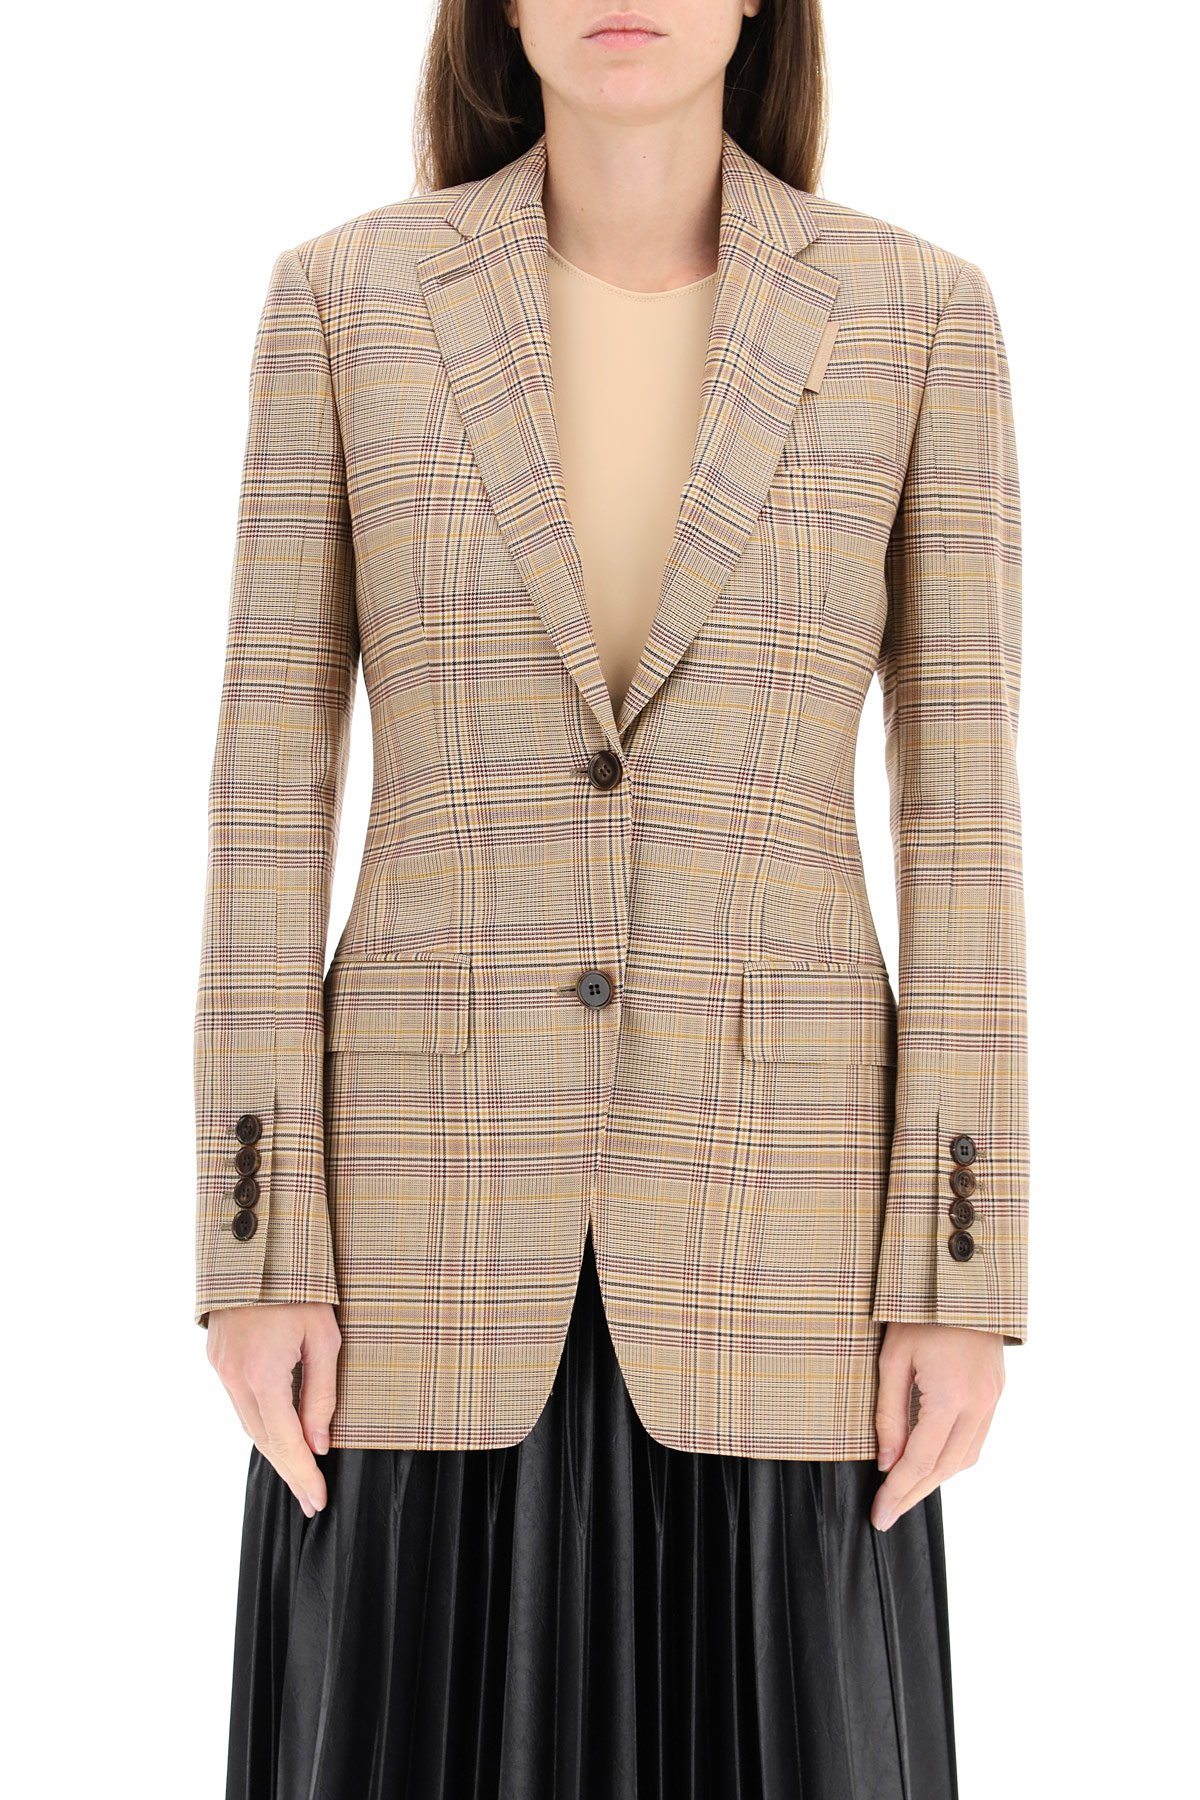 Burberry giacca sartoriale in lana